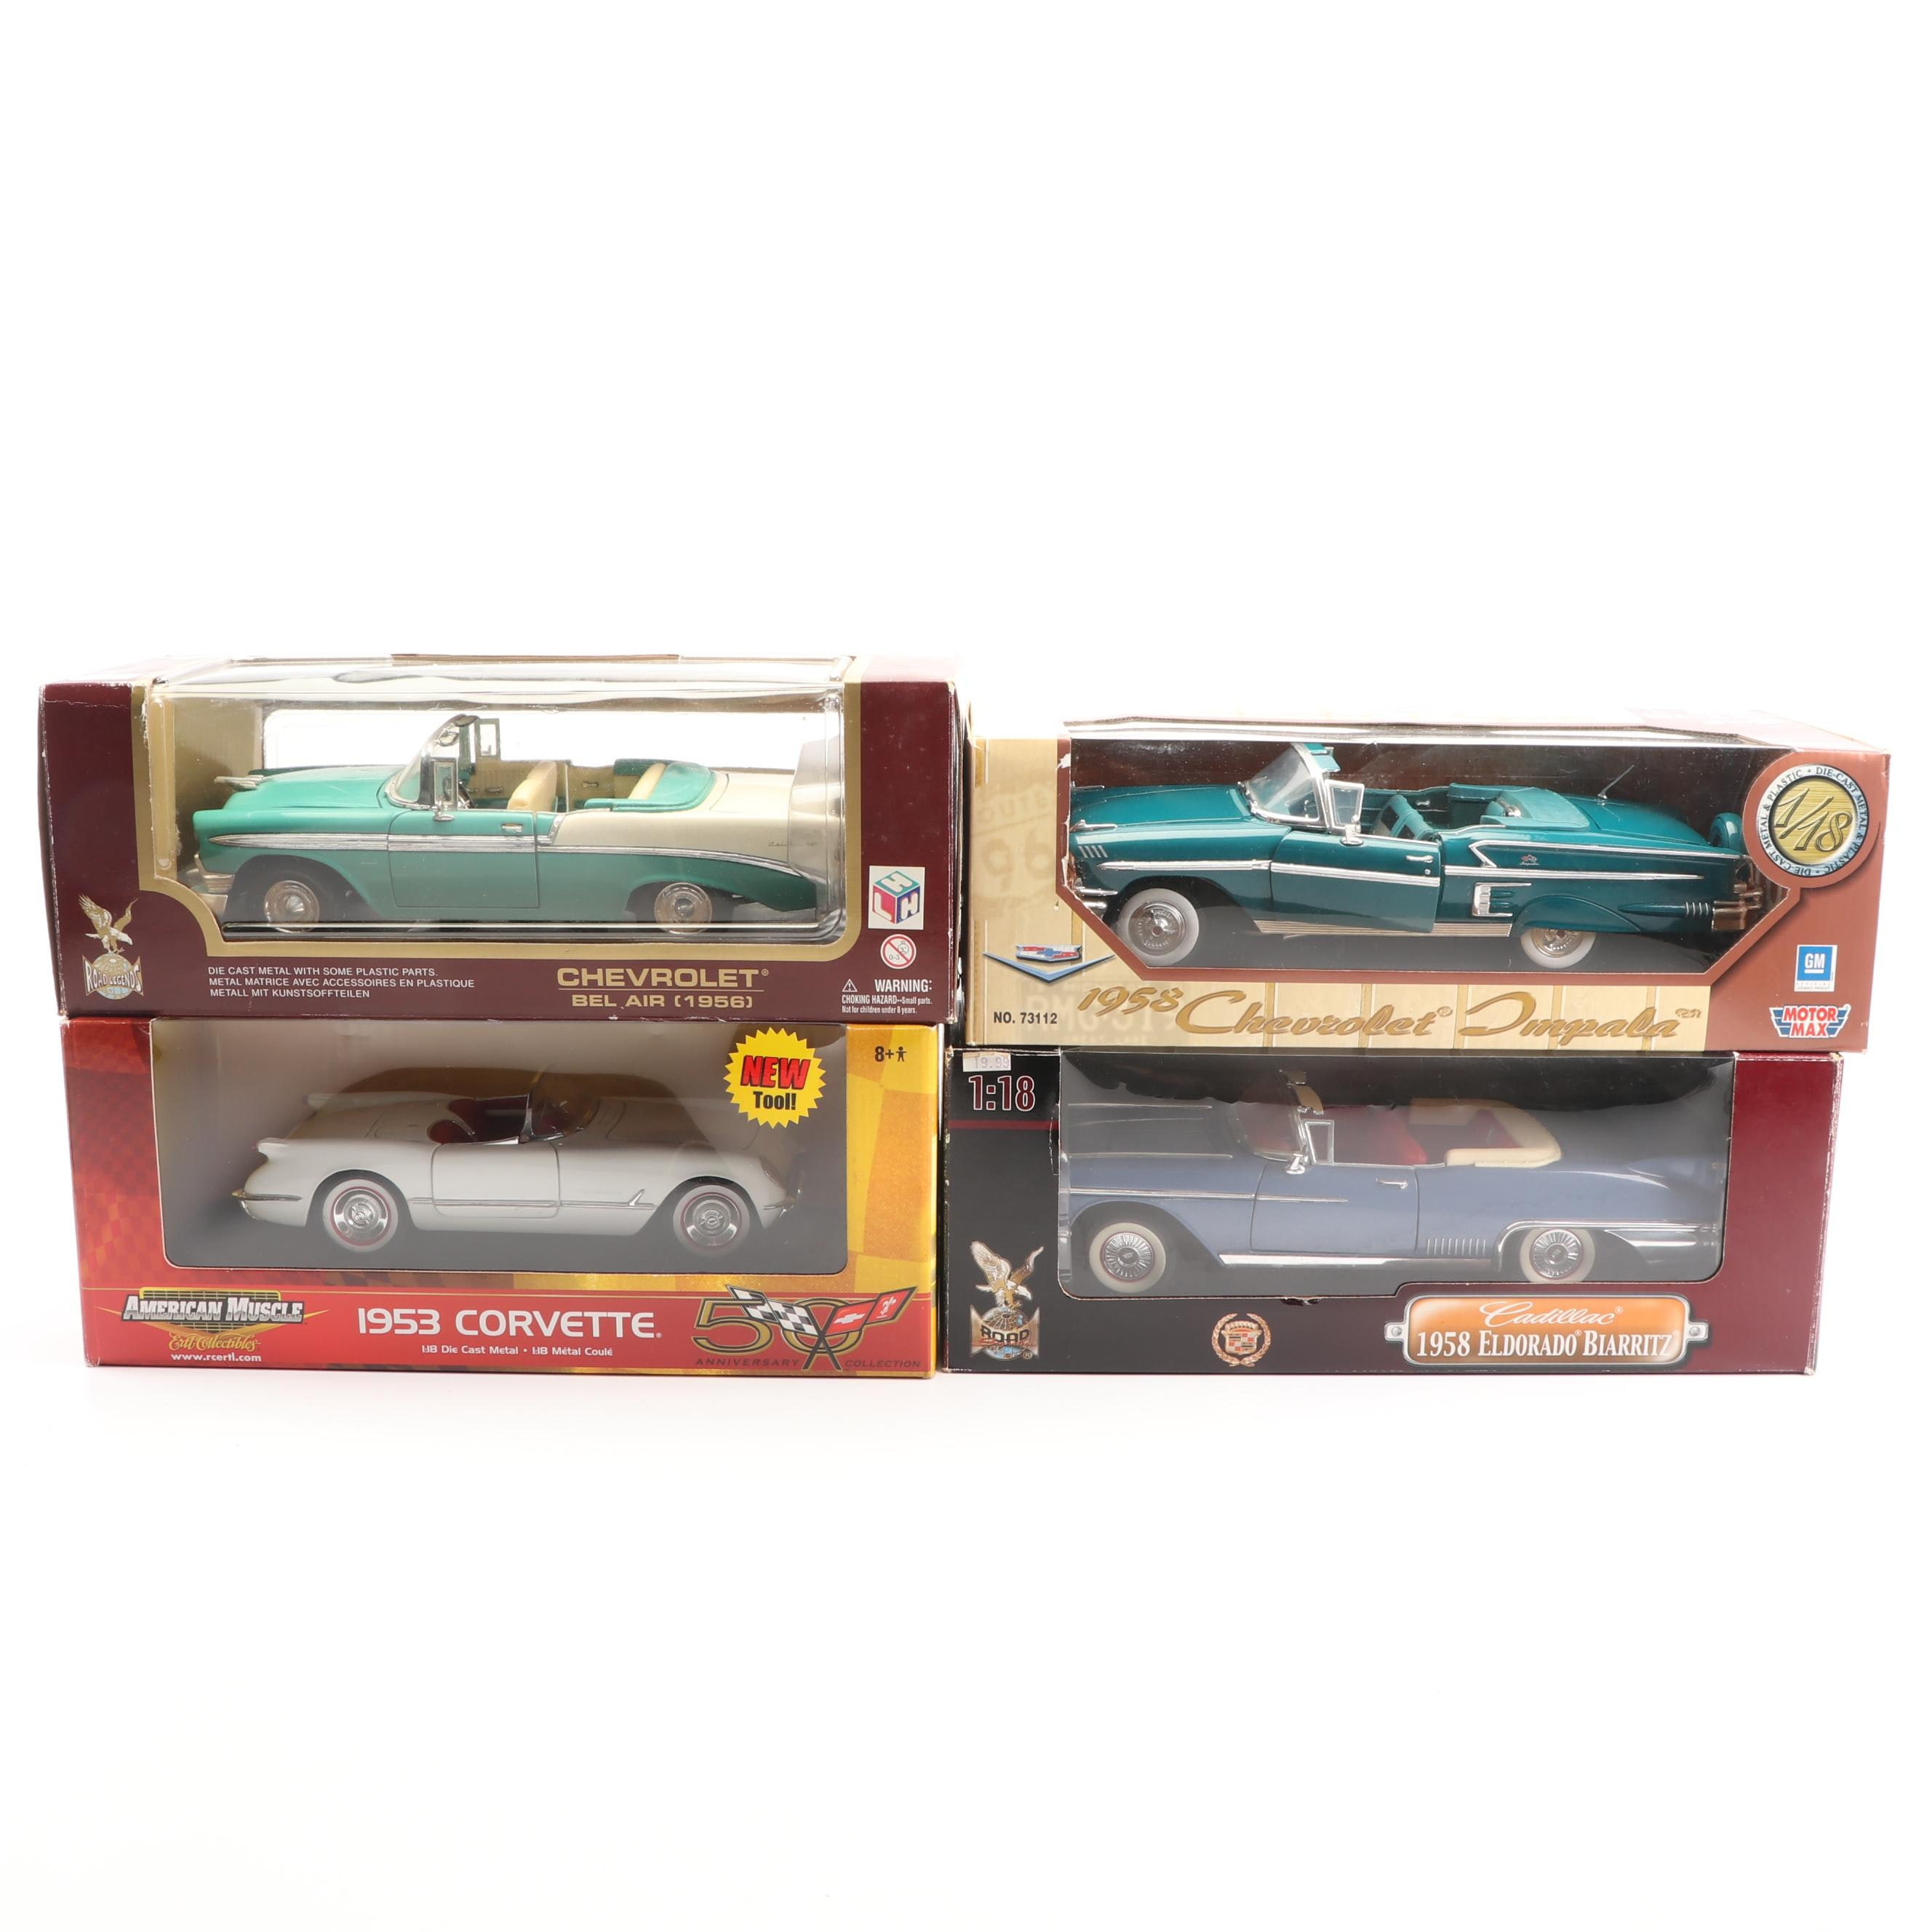 1950s Die-Cast Cars including Road Signature and American Muscle